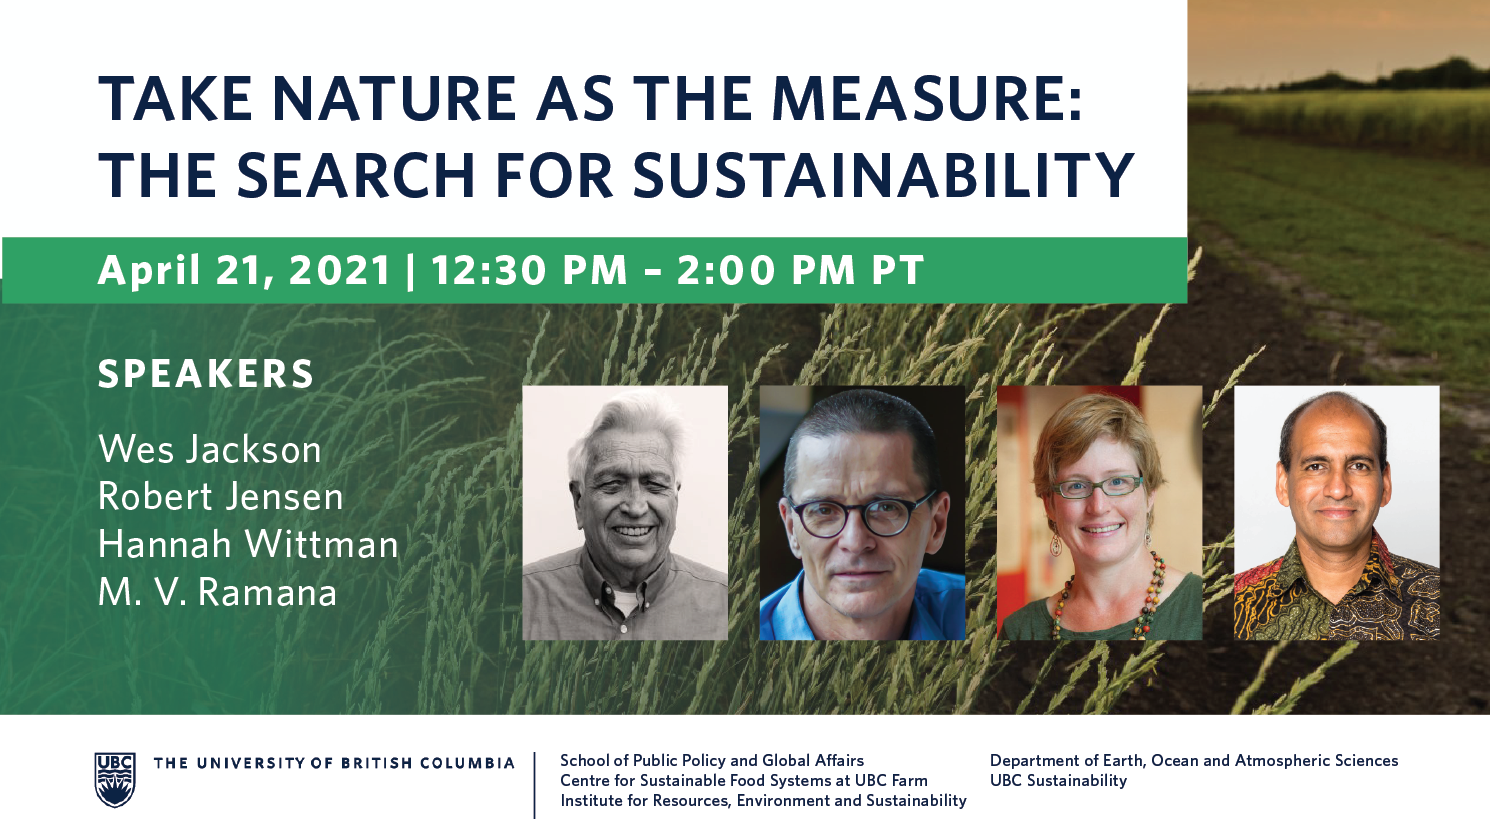 The Search for Sustainability